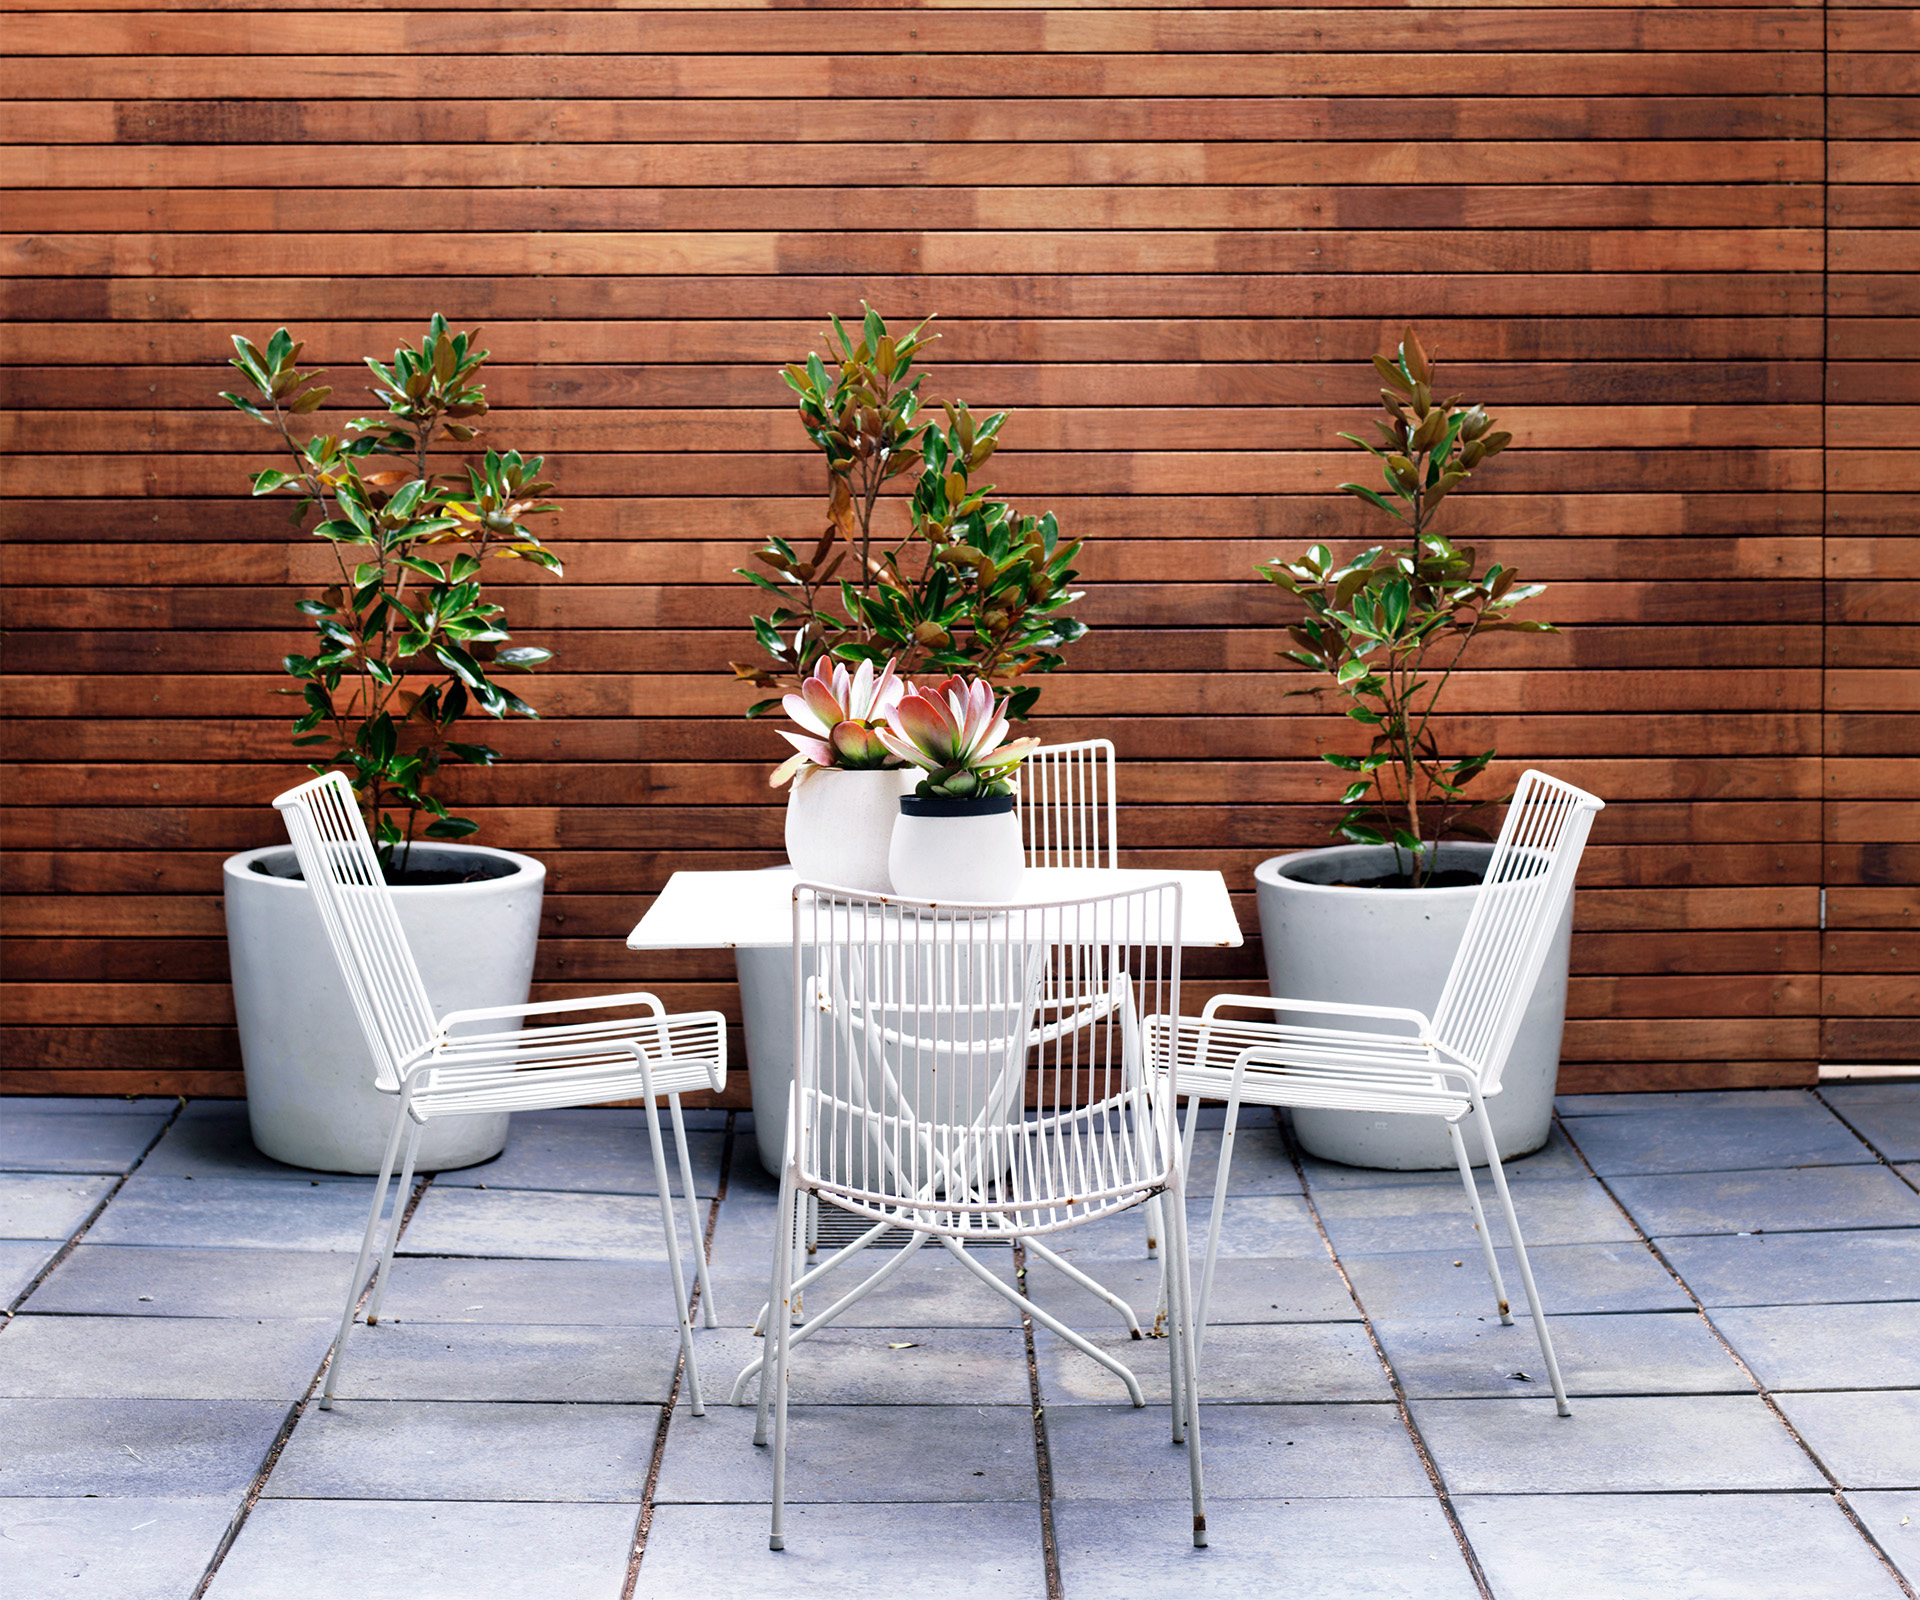 Courtyard and patio ideas: 6 simple ways to update your outdoor space